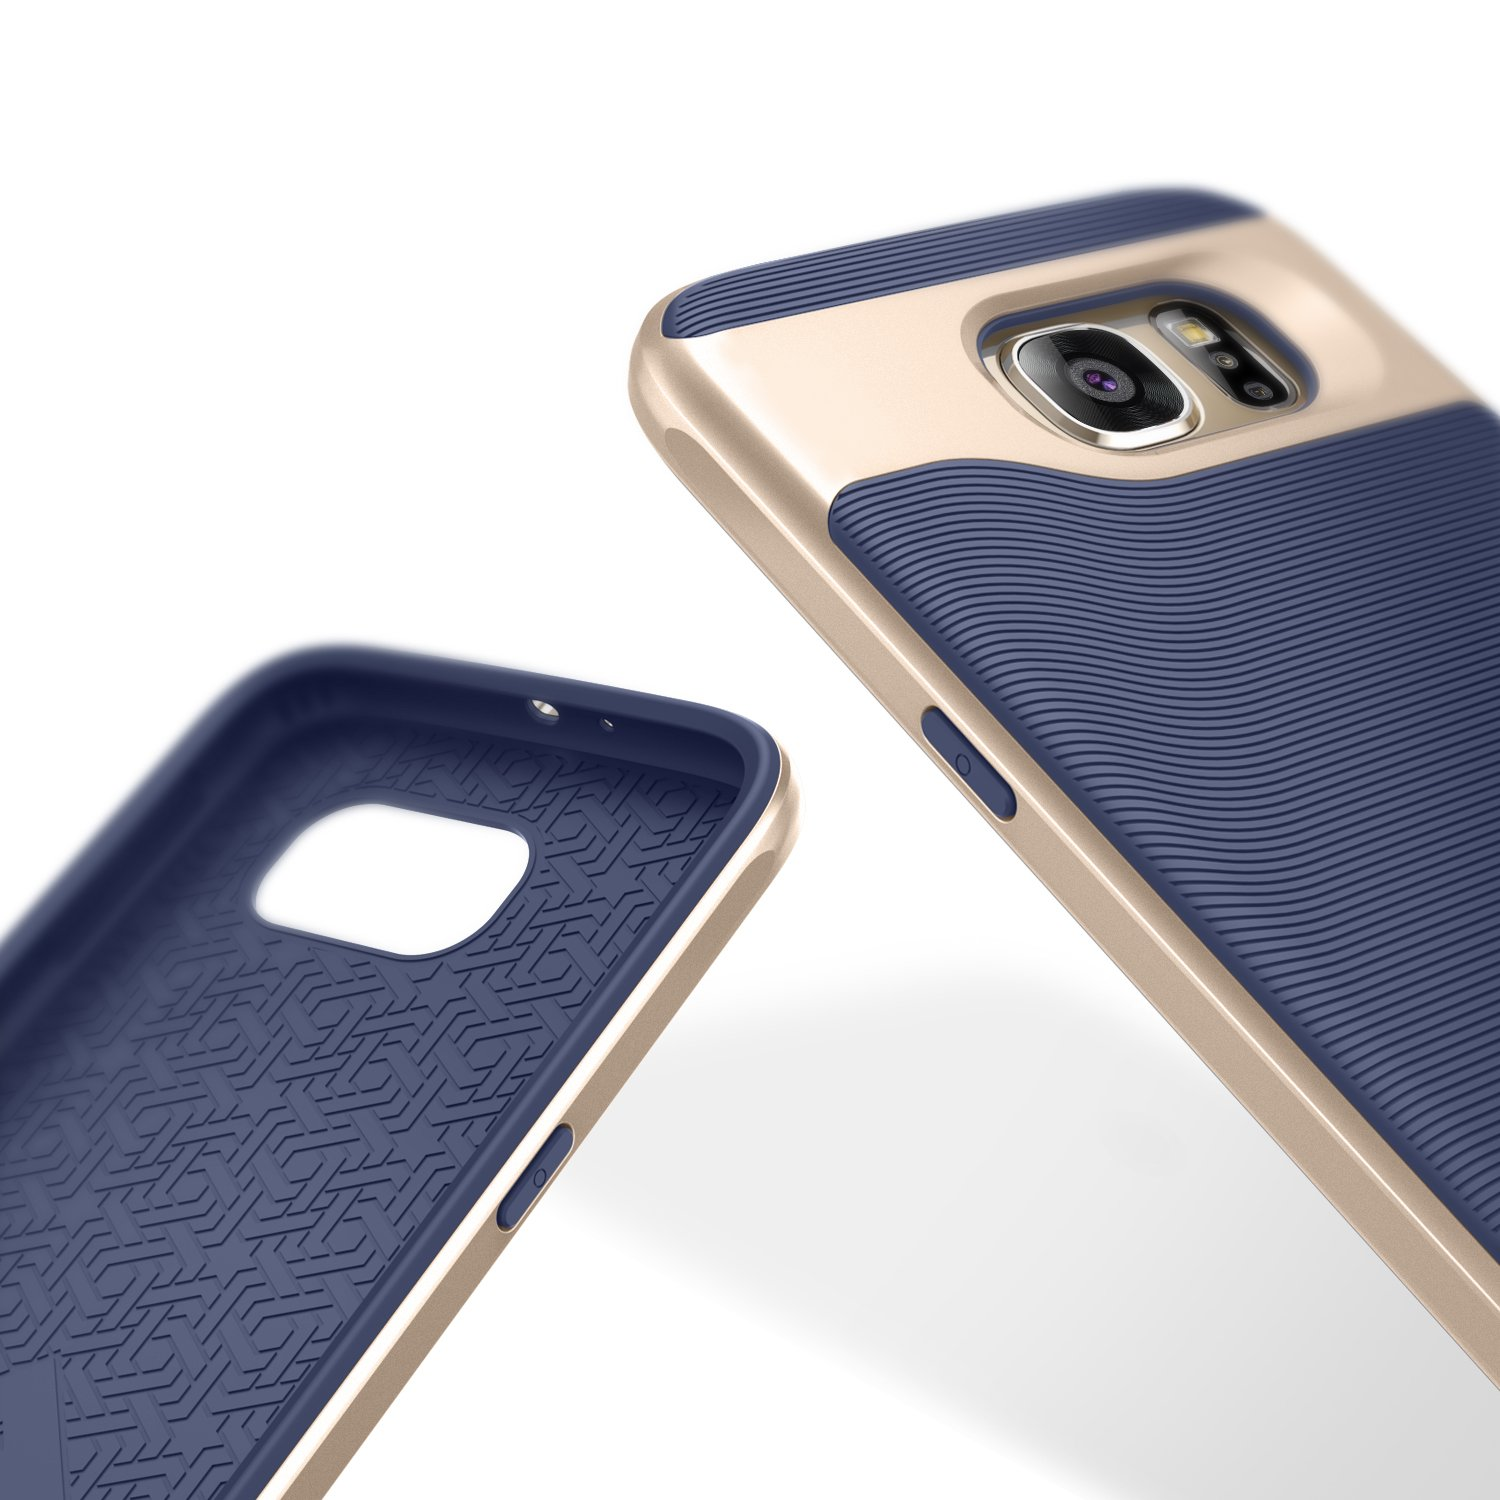 Amazon Caseology for Galaxy S6 case [Wavelength Series] Slim Dual Layer Protective Textured Grip Corner Cushion Design for Samsung Galaxy S6 Navy